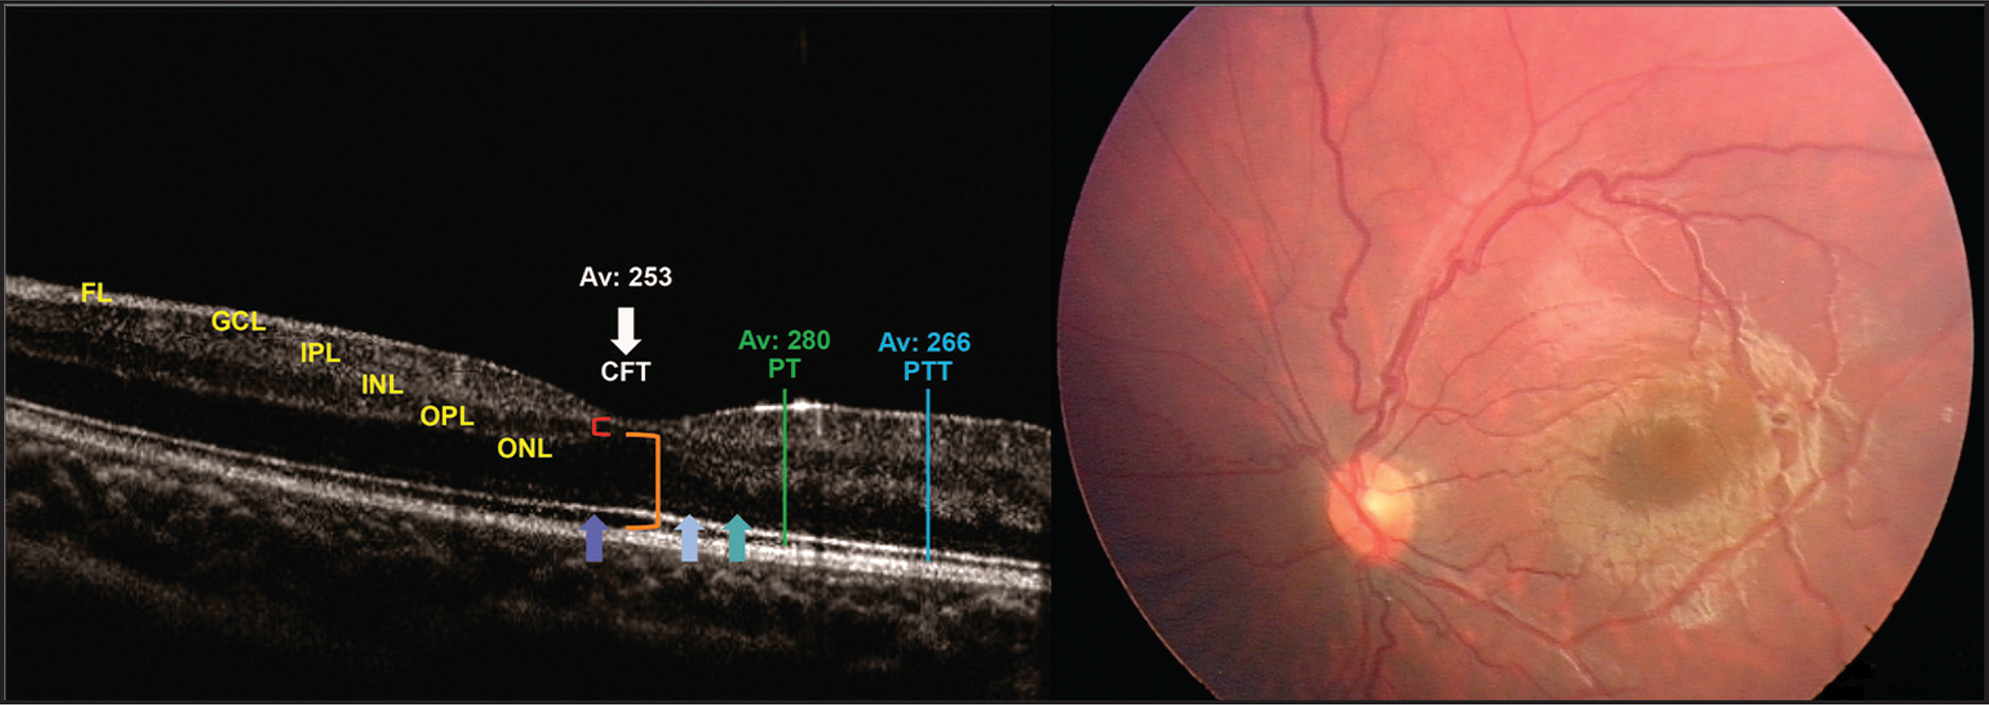 Example of a case with foveal contour development (13 eyes in seven patients). OCT and RetCam (Clarity Medical Systems, Pleasanton, CA) images of the left eye of patient 5 at 28 months after Avastin (bevacizumab; Genentech, South San Francisco, CA) treatment (birth weight: 720 g; gestational age: 24 weeks; zone I ROP). All retinal layers were present. Persistence of retinal layers (inner nuclear, inner plexiform) over the fovea (red bracket). Signs of macular development: outer segment elongation, inner segment/outer segment and external limiting membrane presence (blue arrows), and thickening of the outer nuclear layer at the fovea (orange bracket).